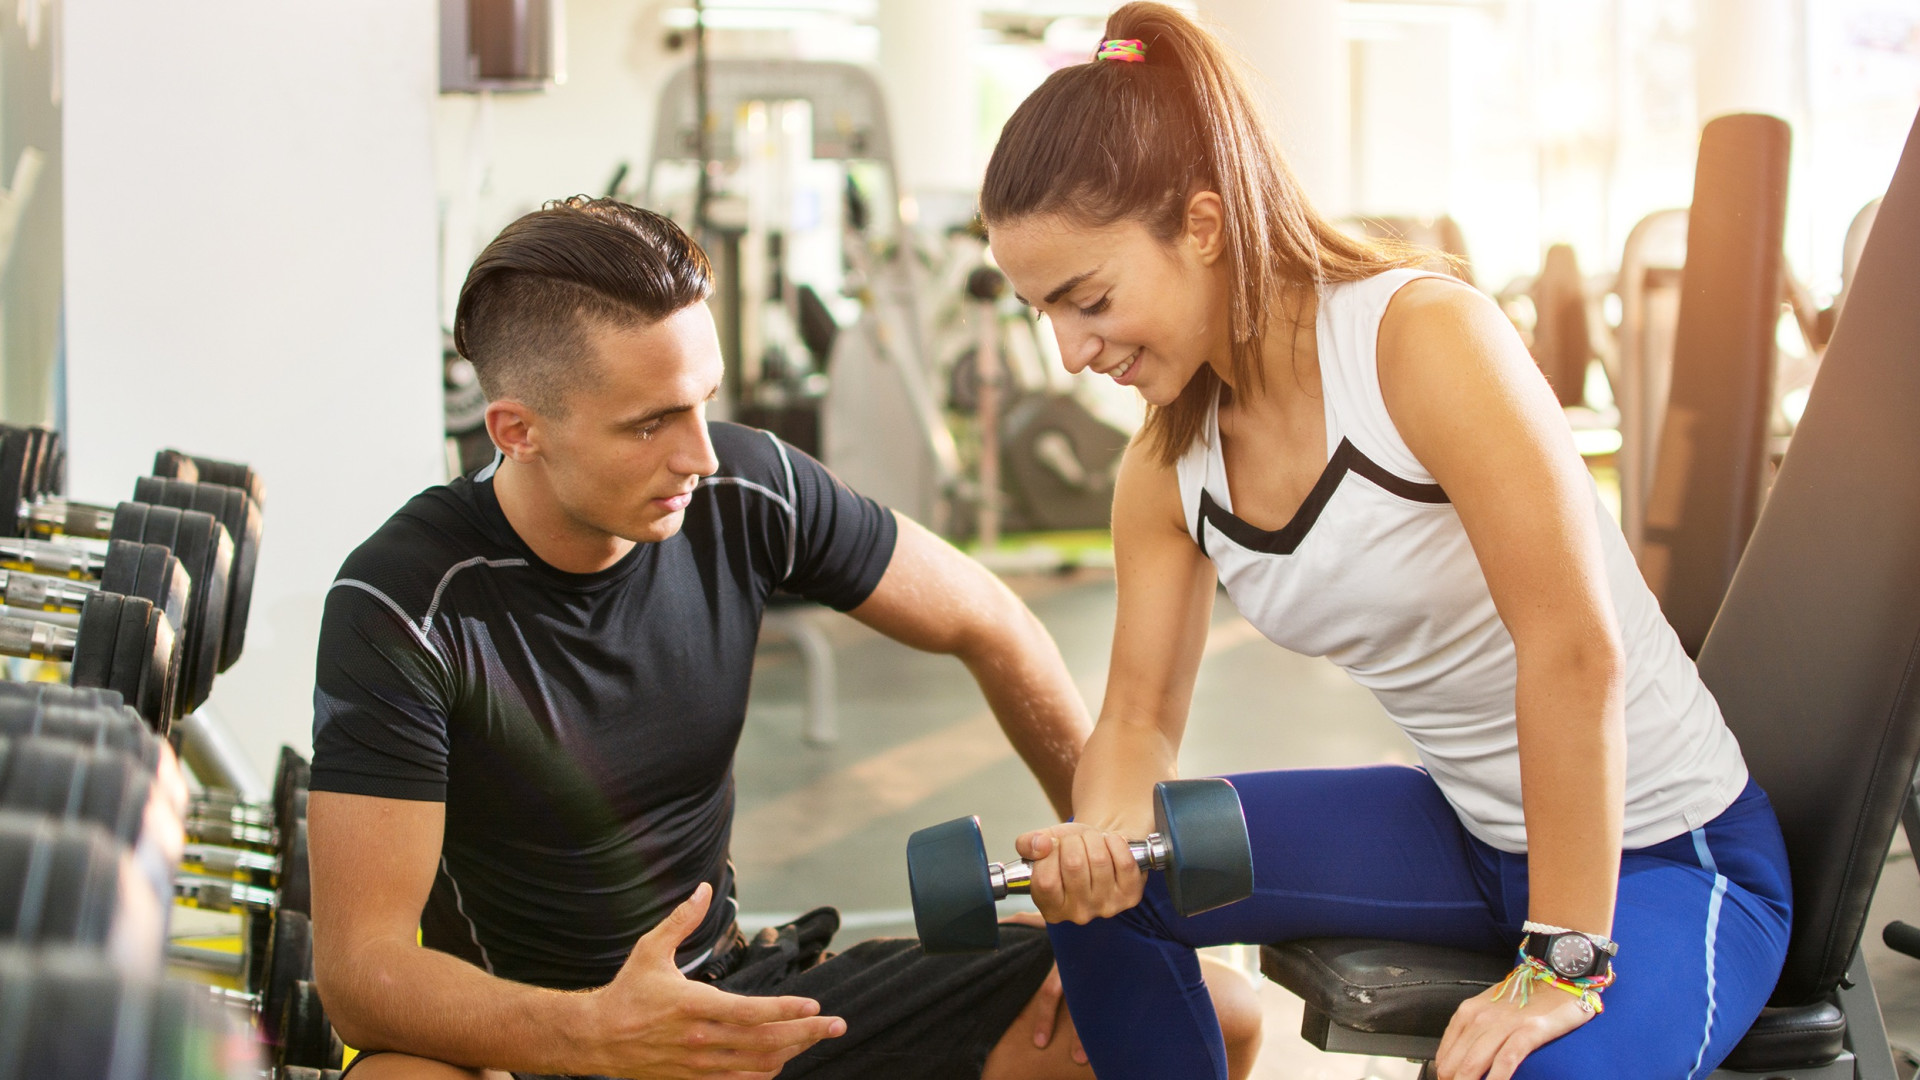 Get Started Today And Enjoy High-Quality Fitness Classes In Winston-Salem!